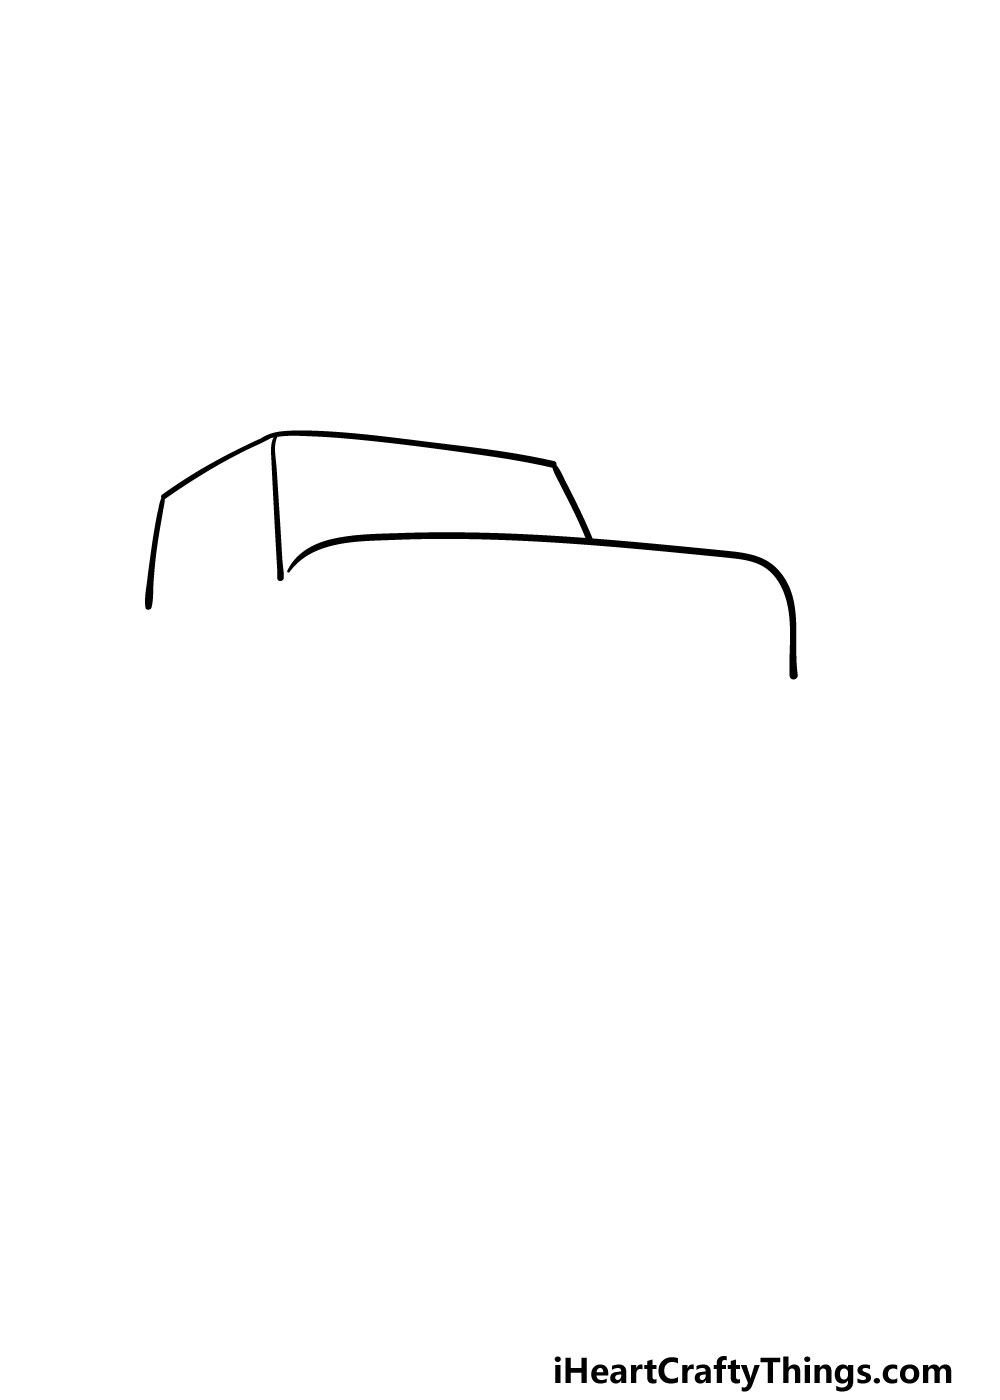 drawing a jeep step 1